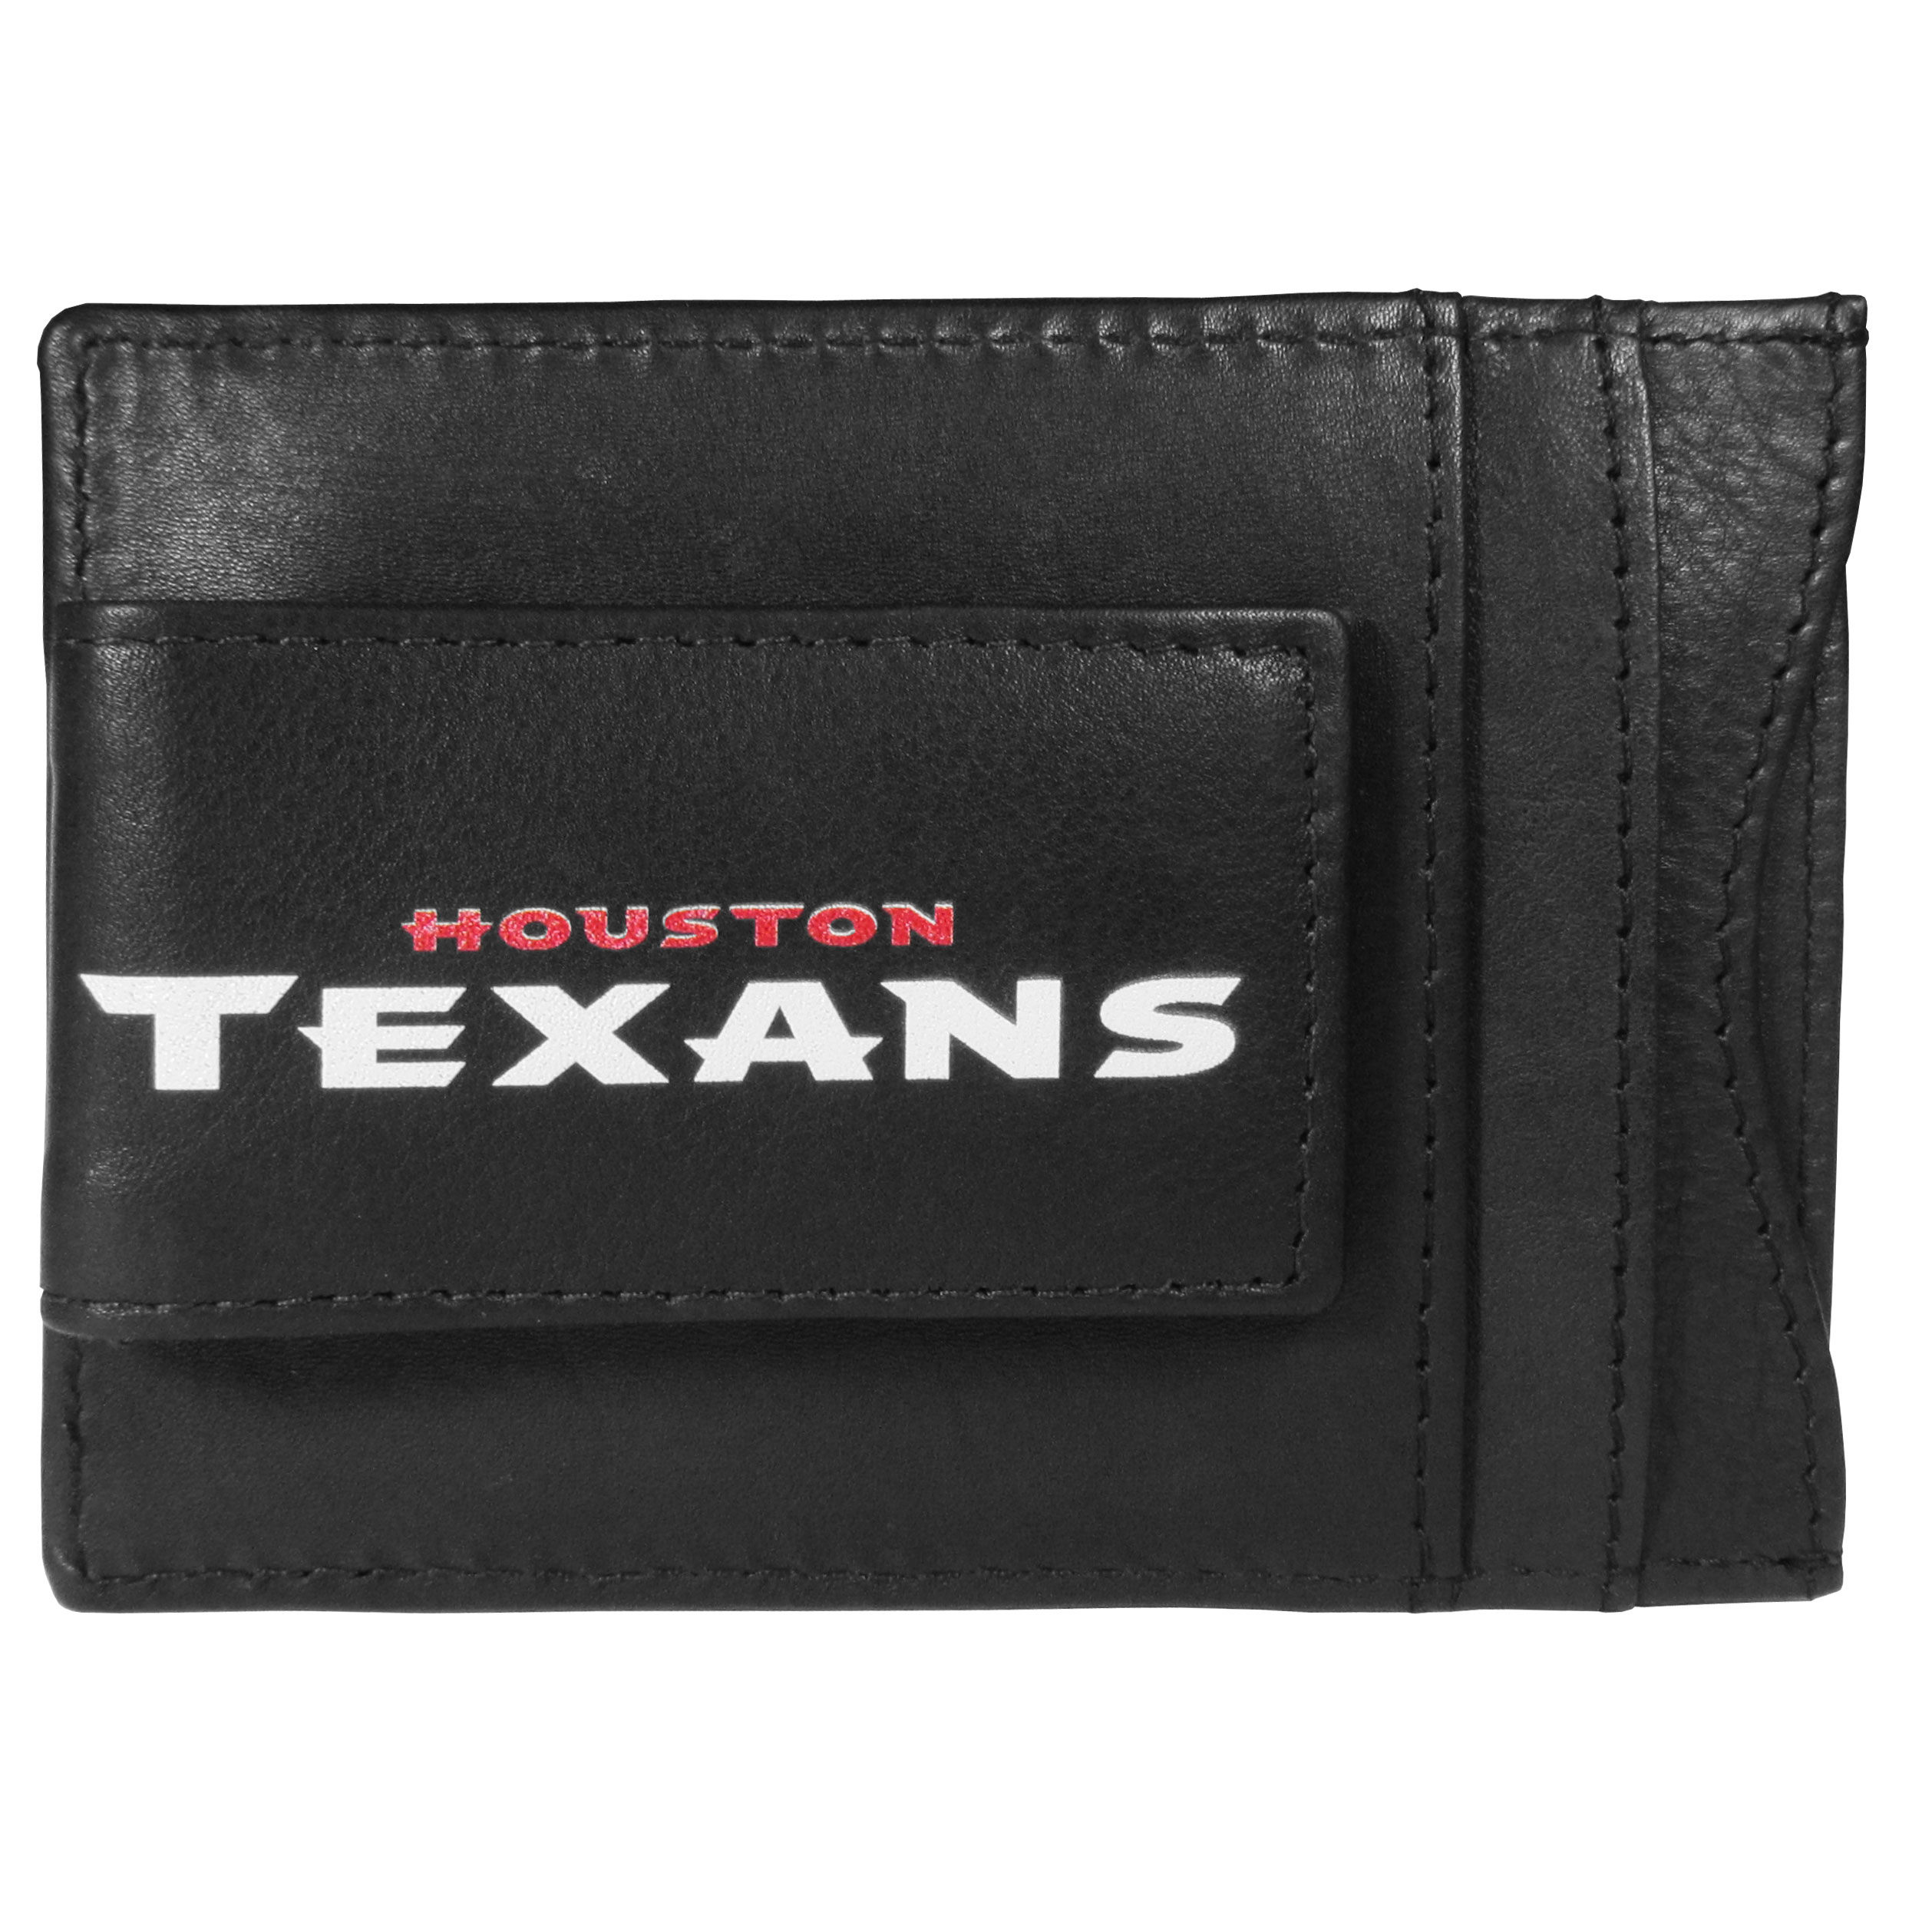 Houston Texans Logo Leather Cash and Cardholder - This super slim leather wallet lets you have all the benefits of a money clip while keeping the organization of a wallet. On one side of this front pocket wallet there is a strong, magnetic money clip to keep your cash easily accessible and the?Houston Texans team logo on the front. The versatile men's accessory is a perfect addition to your fan apparel.